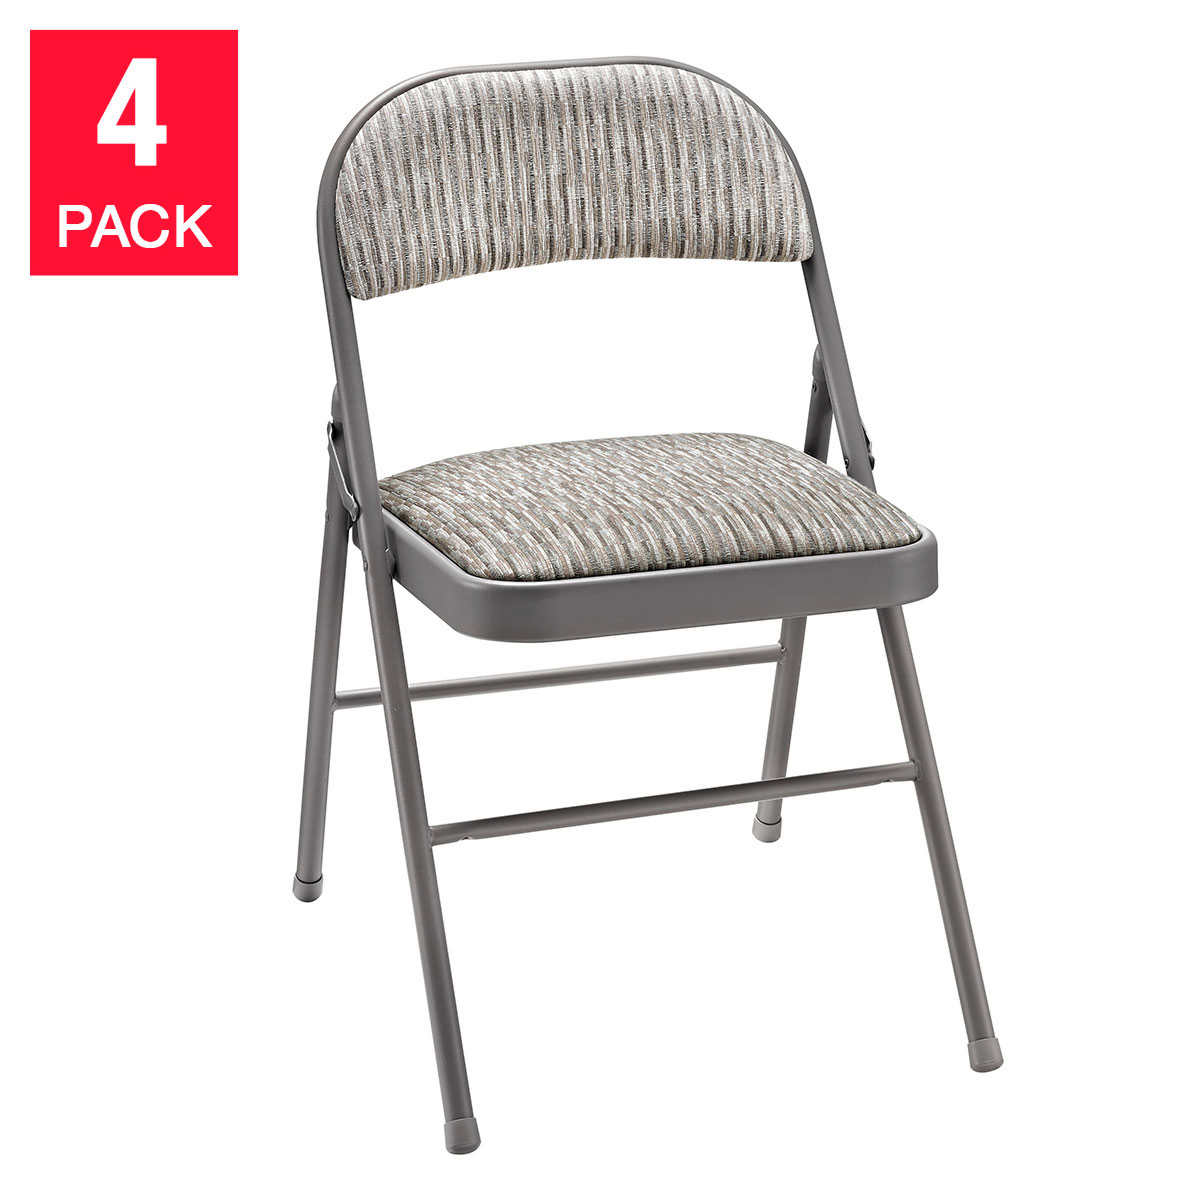 Meco Upholstered Folding Chair 4 Pack